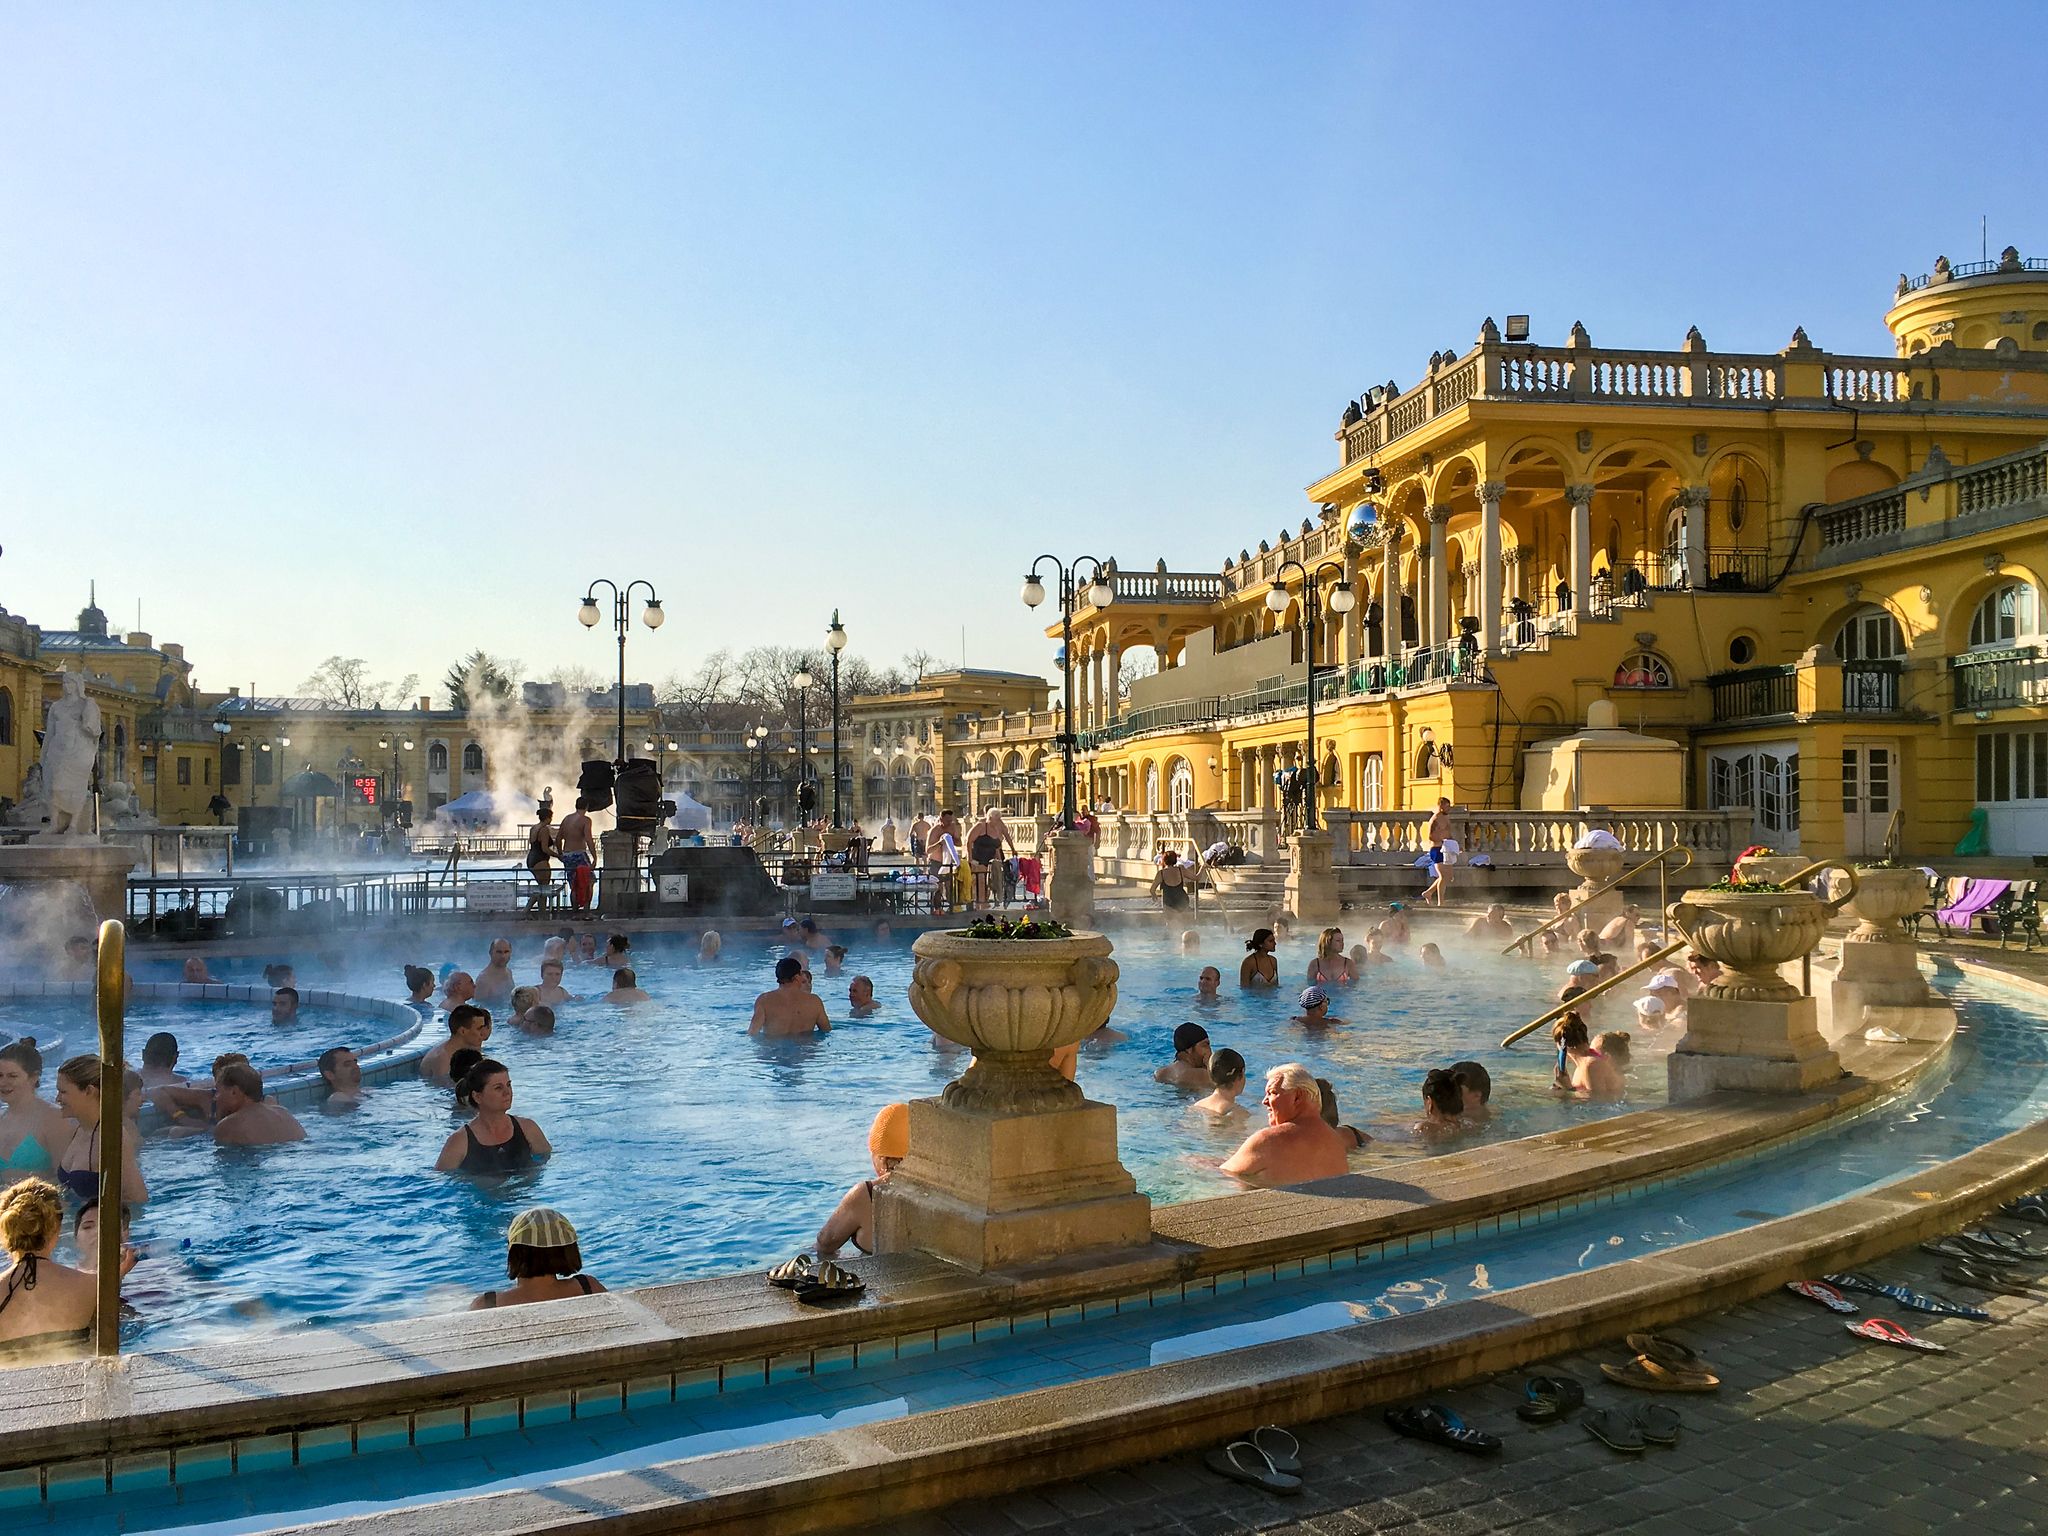 what to wear in budapest in december: bring a bathing suit for the spas